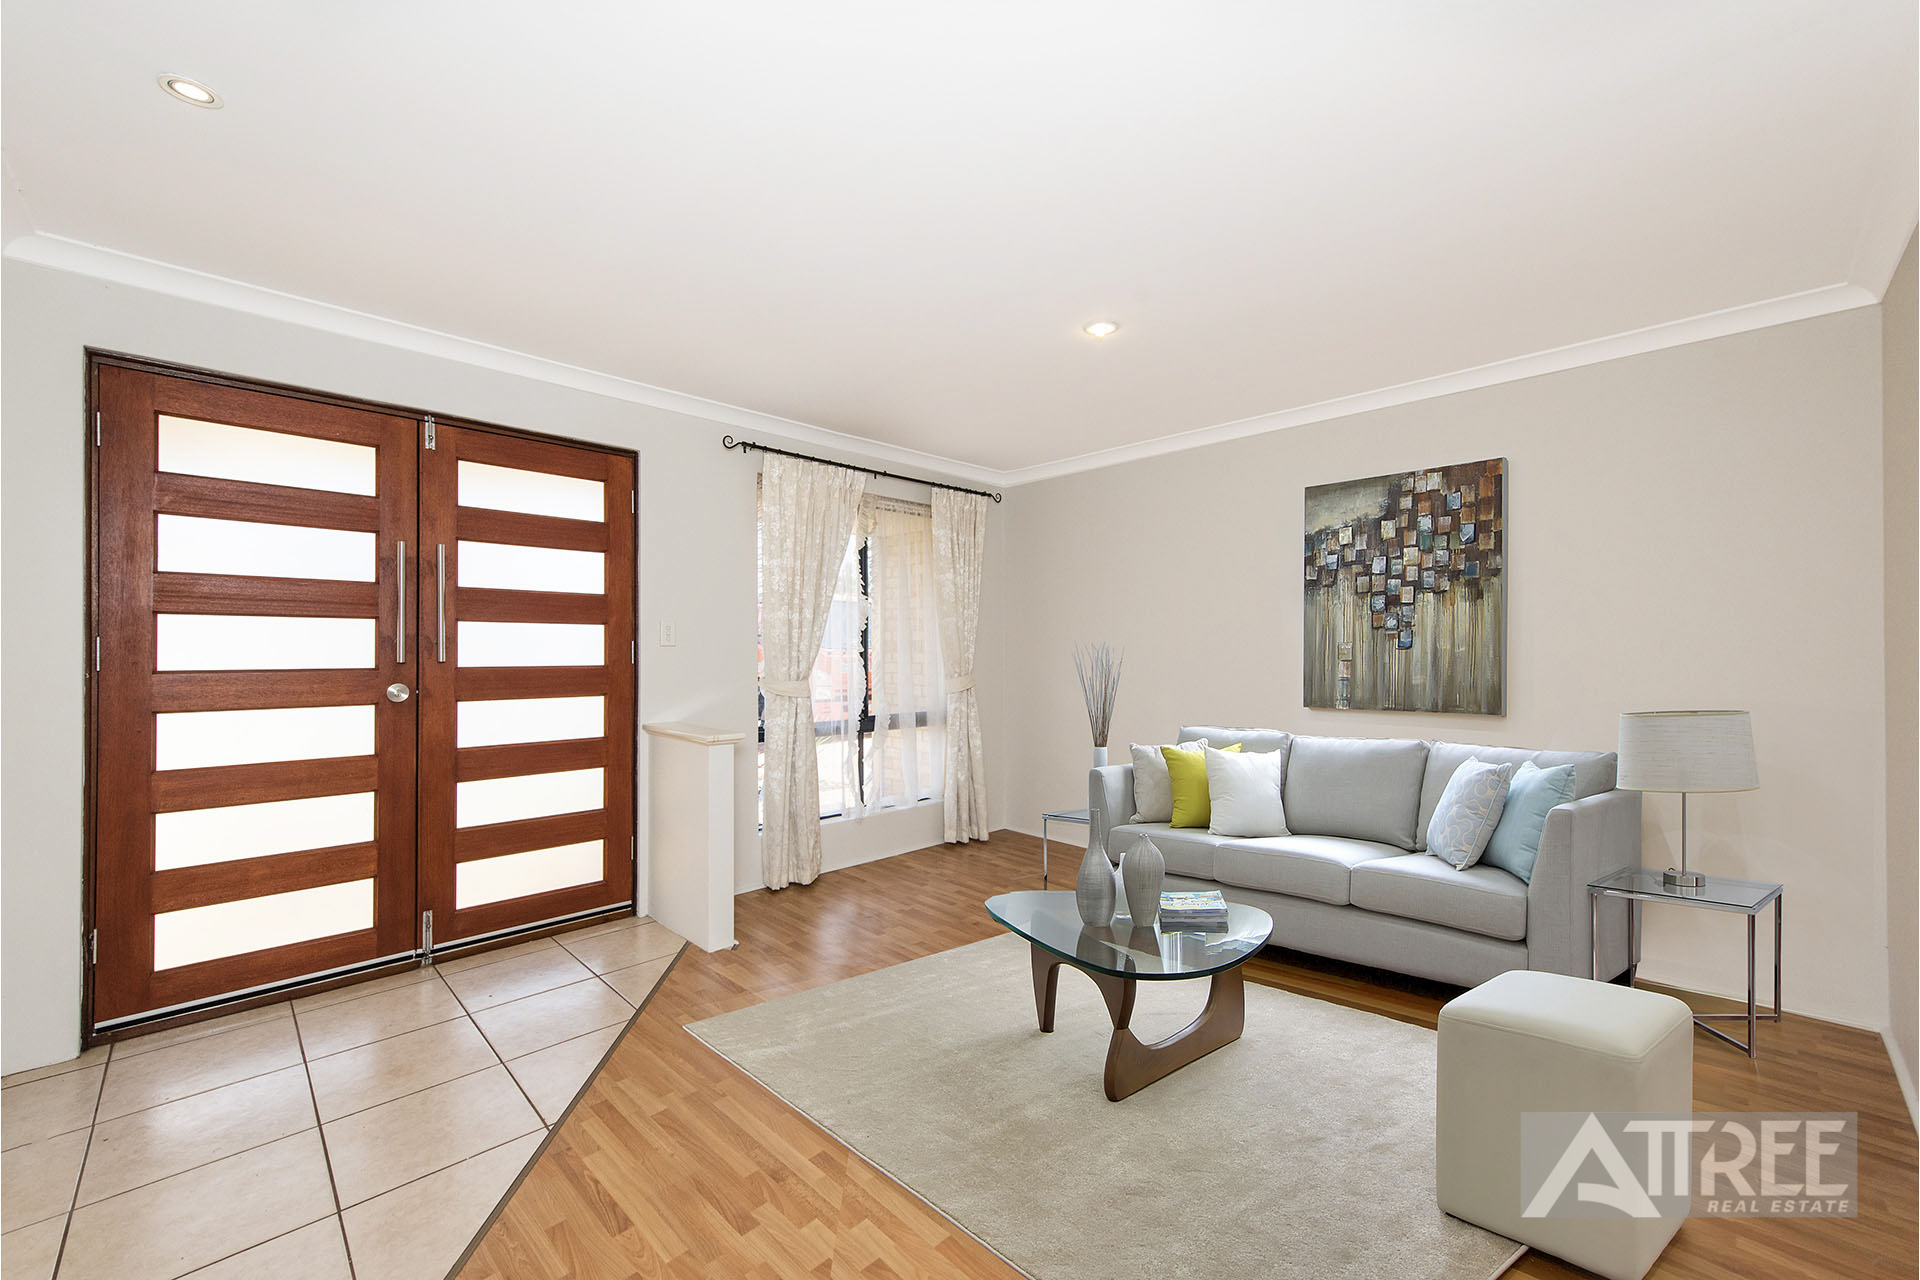 Property for sale in CANNING VALE, 230 Amherst Road : Attree Real Estate